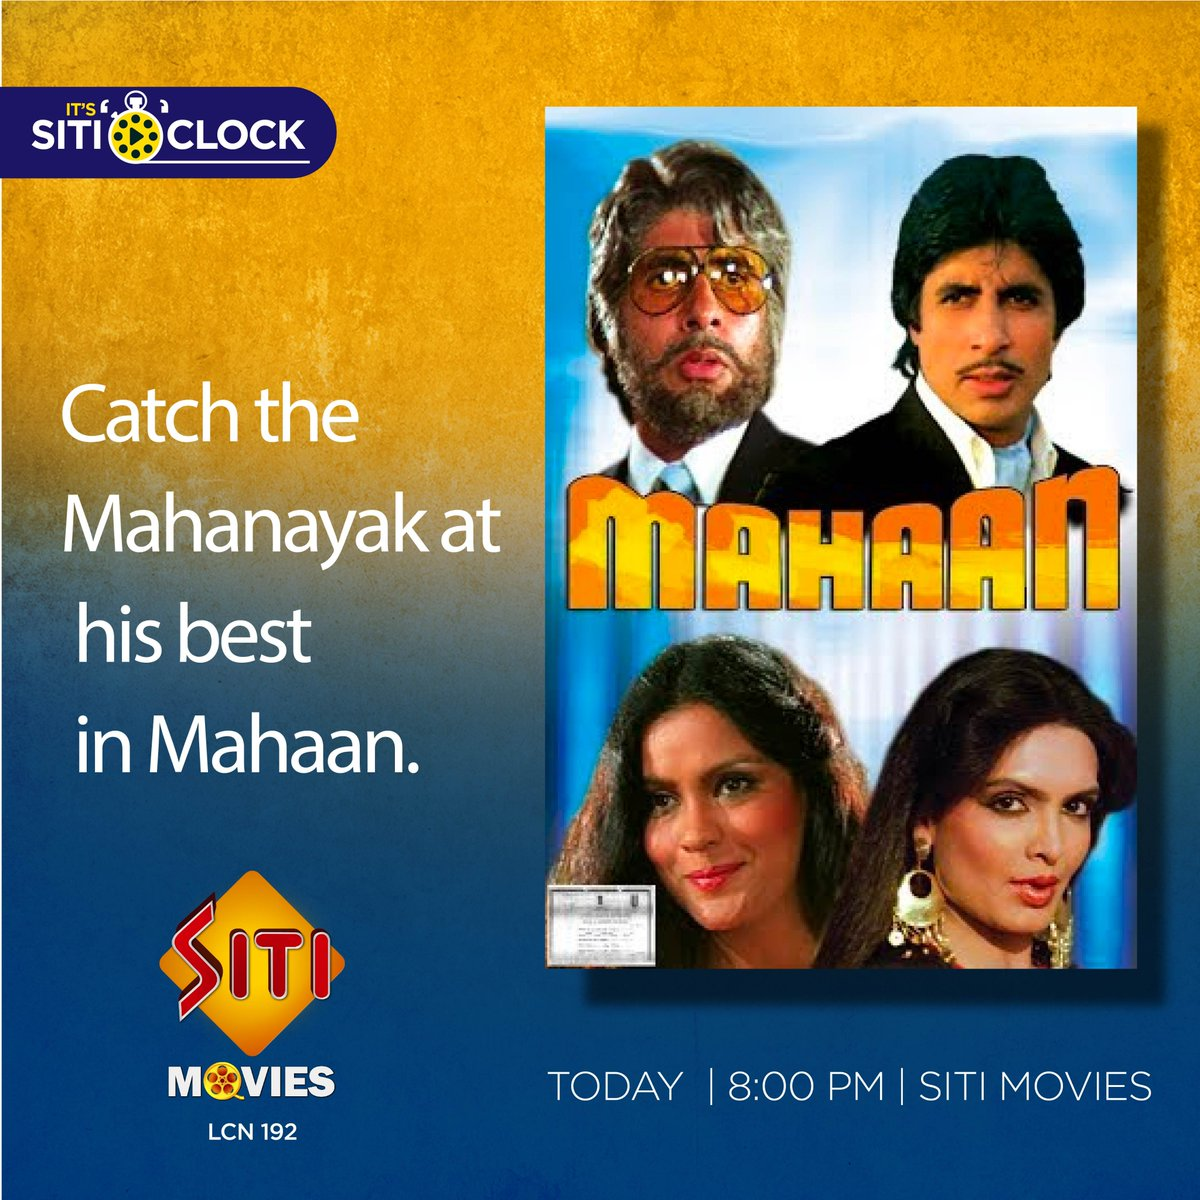 Here is an indulgence for all Big B fans, watch India's biggest superstar work his charm. #Entertainment #Movie #Mahaan #SITINetworks https://t.co/2QEJPPOs0L